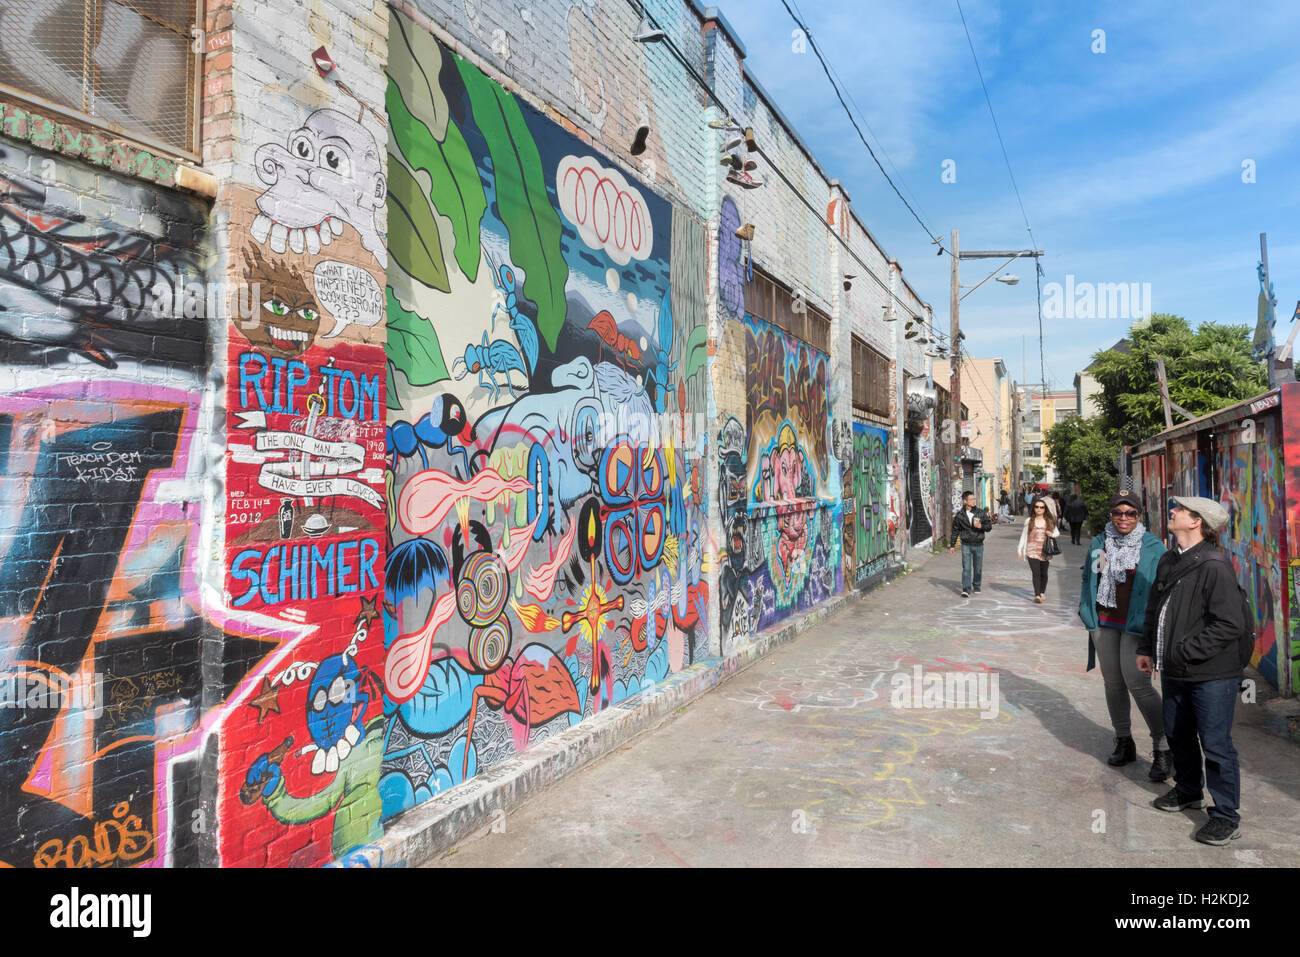 Murals And Graffiti Art On Walls In Clarion Alley In The Mission